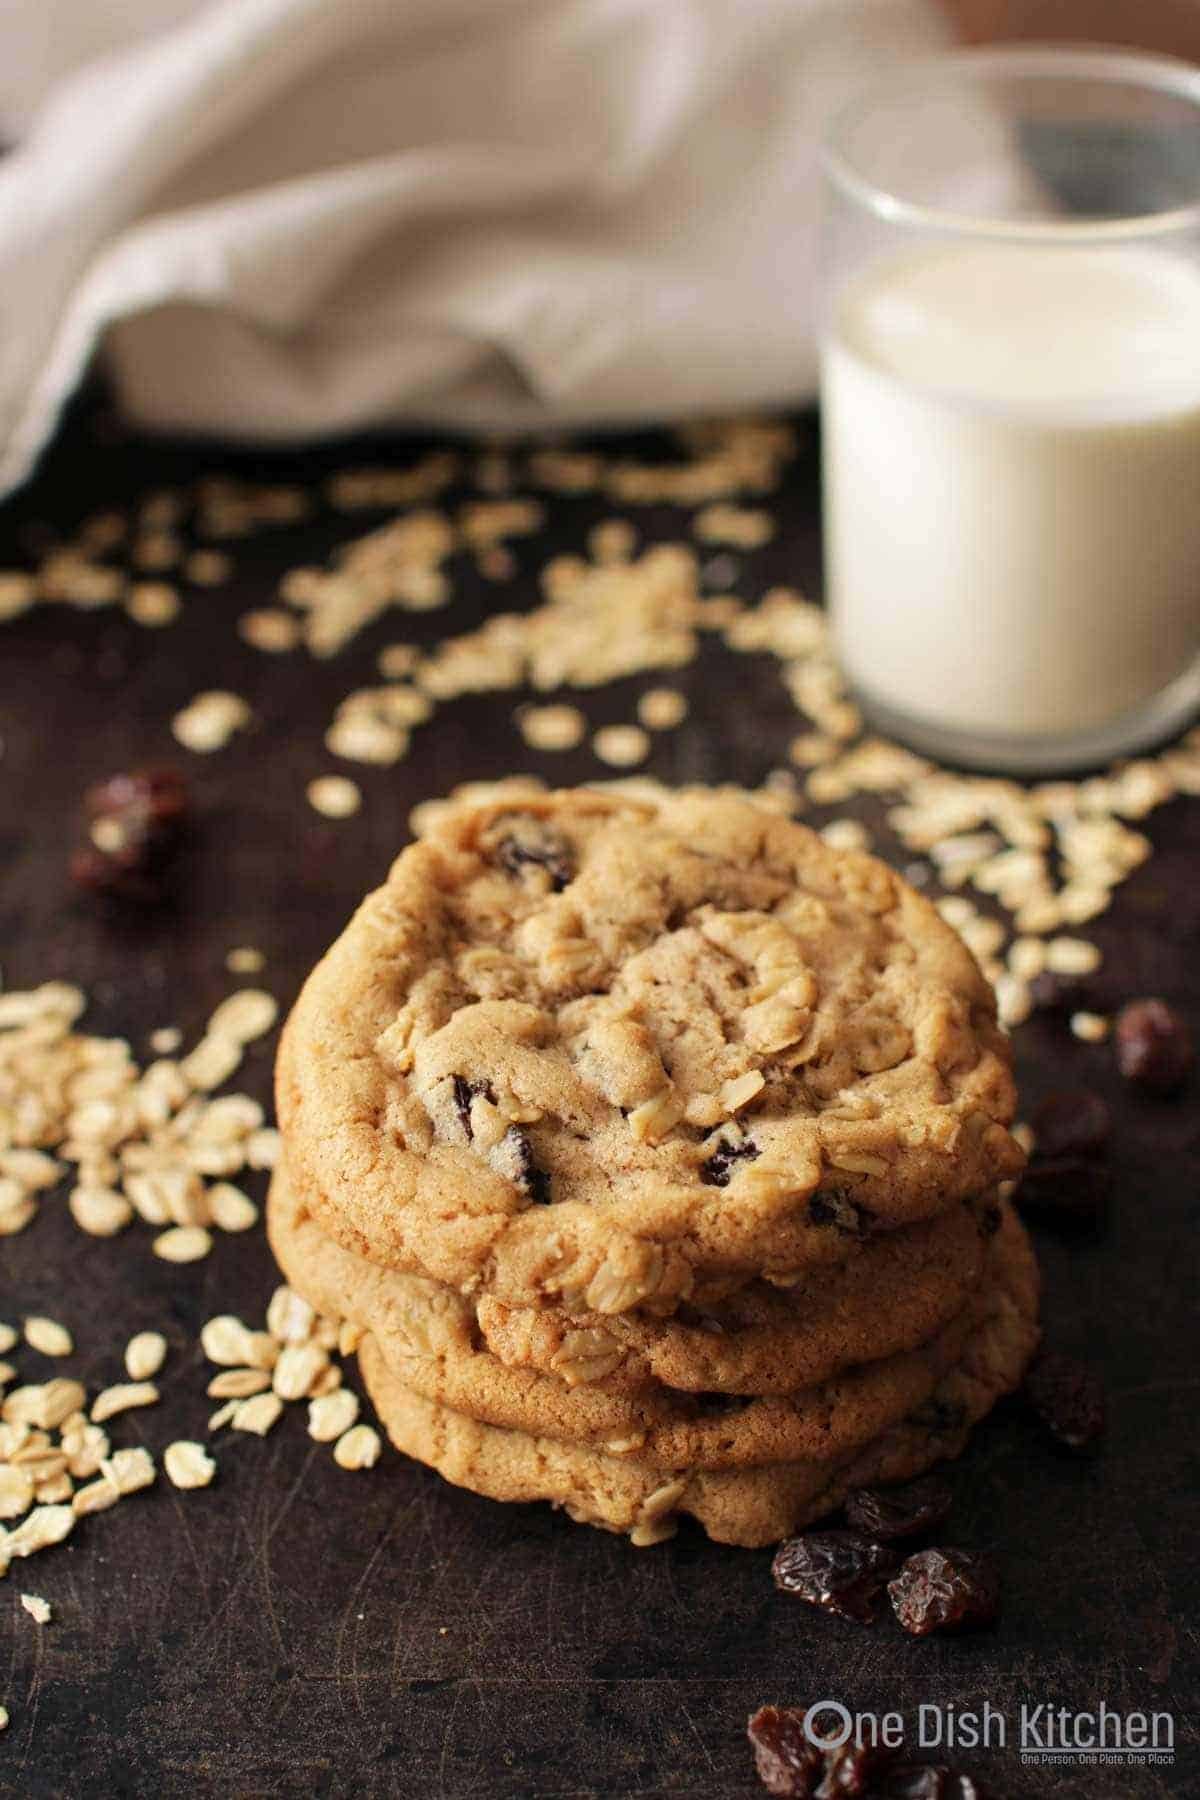 A stack of four oatmeal cookies on a dark surface with scattered oats and raisins and a glass of milk in the background